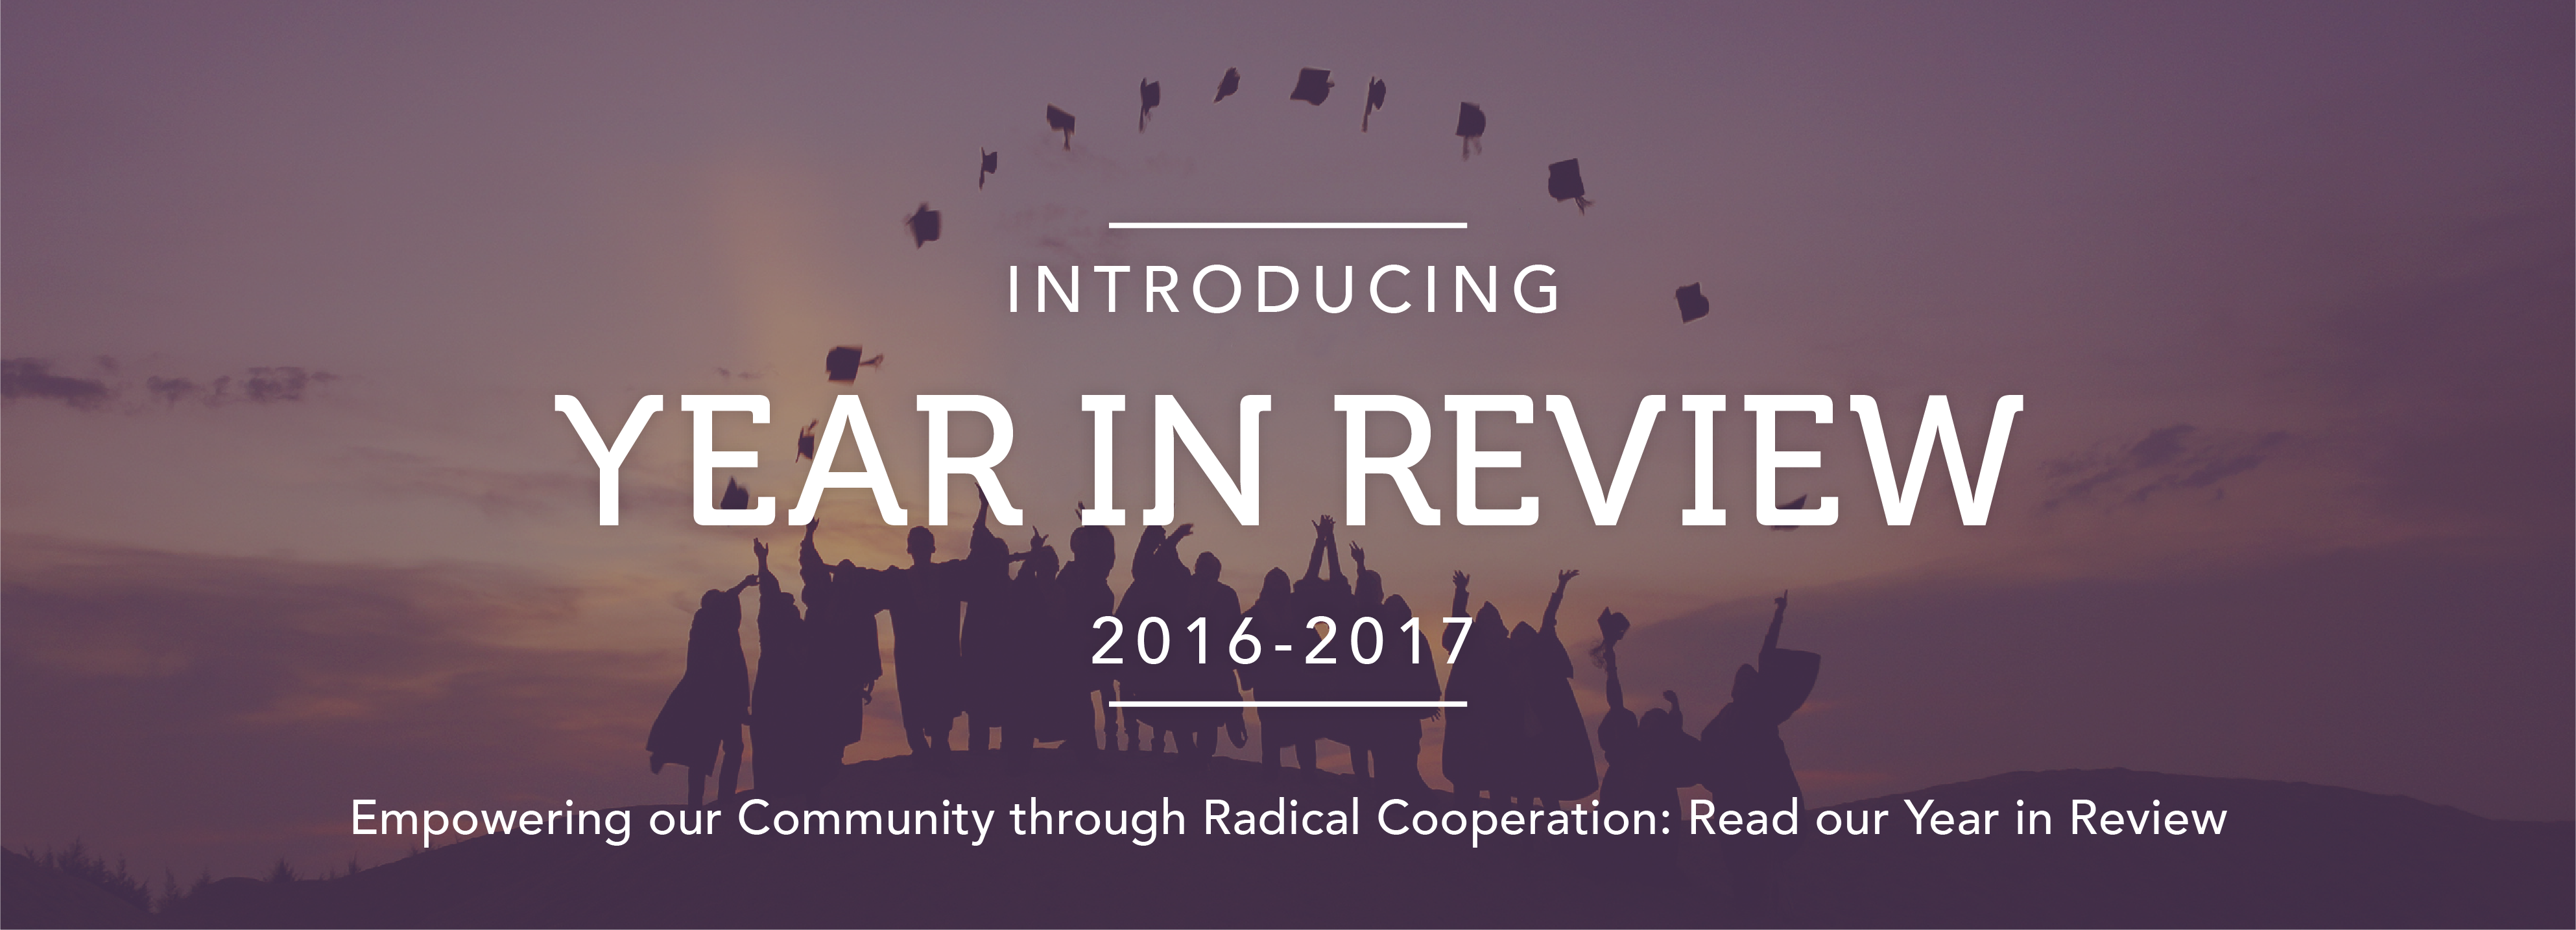 2016-2017 Year in Review